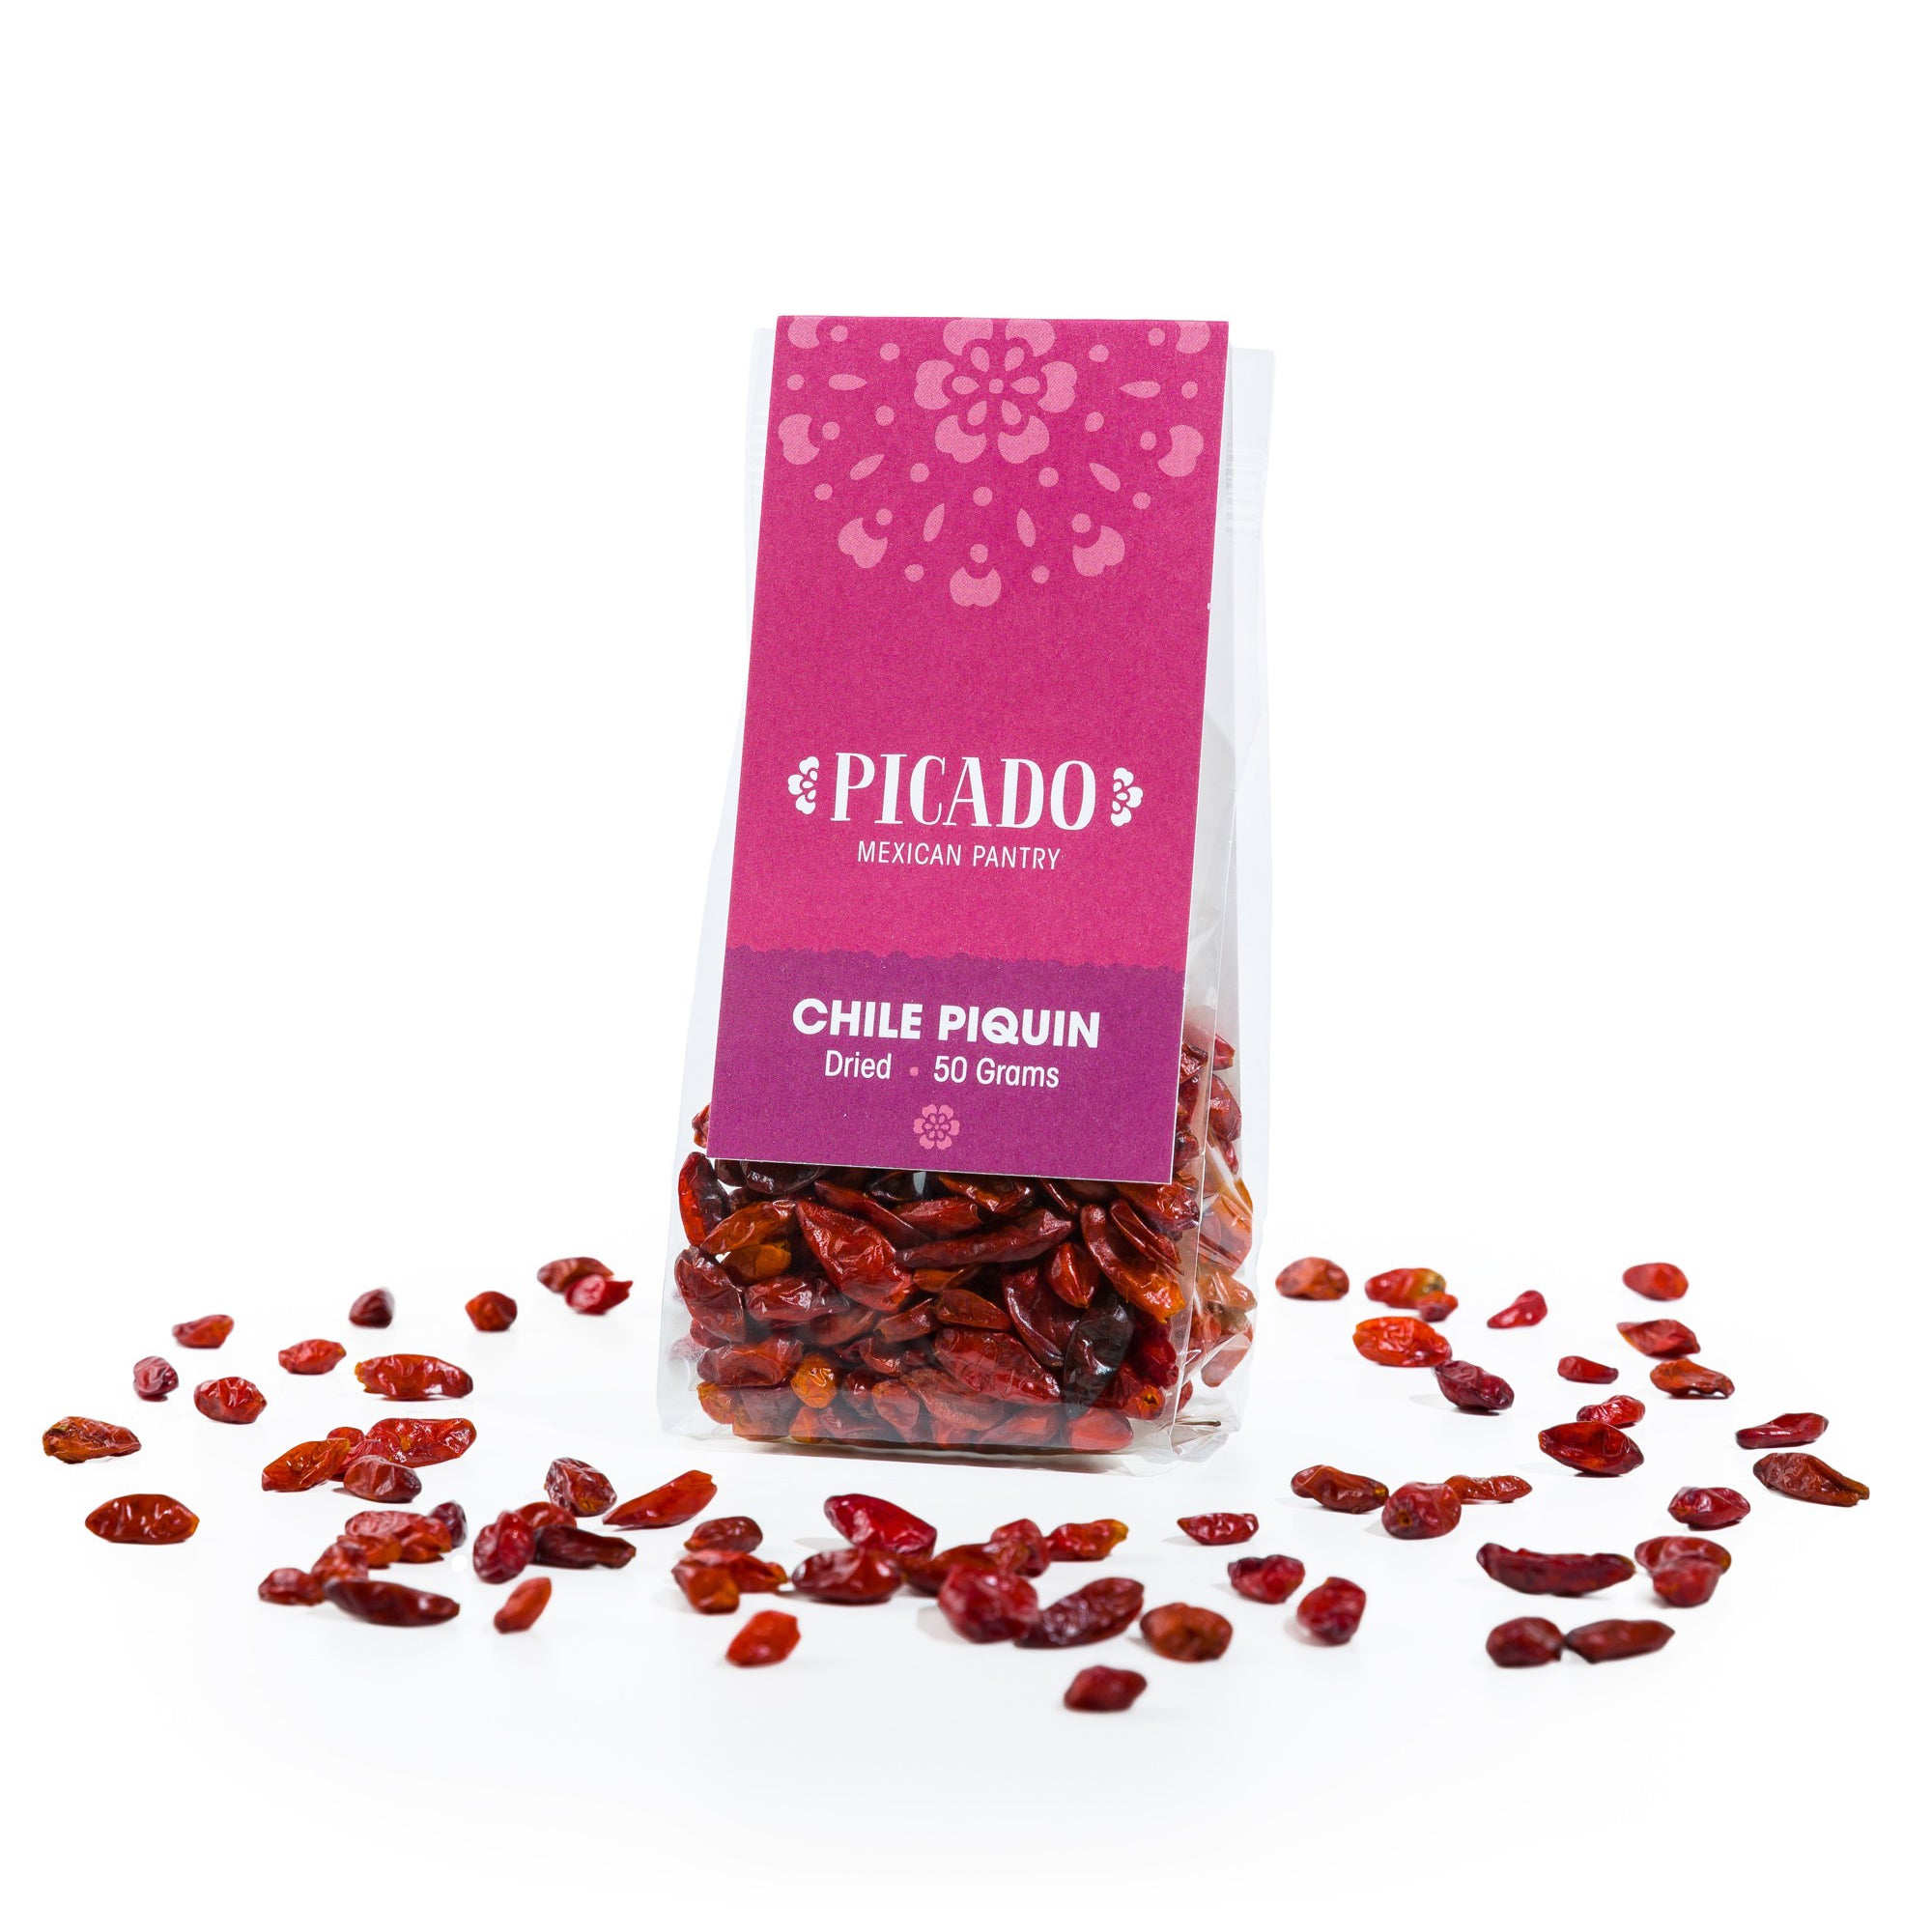 Dried Piquin Chilies